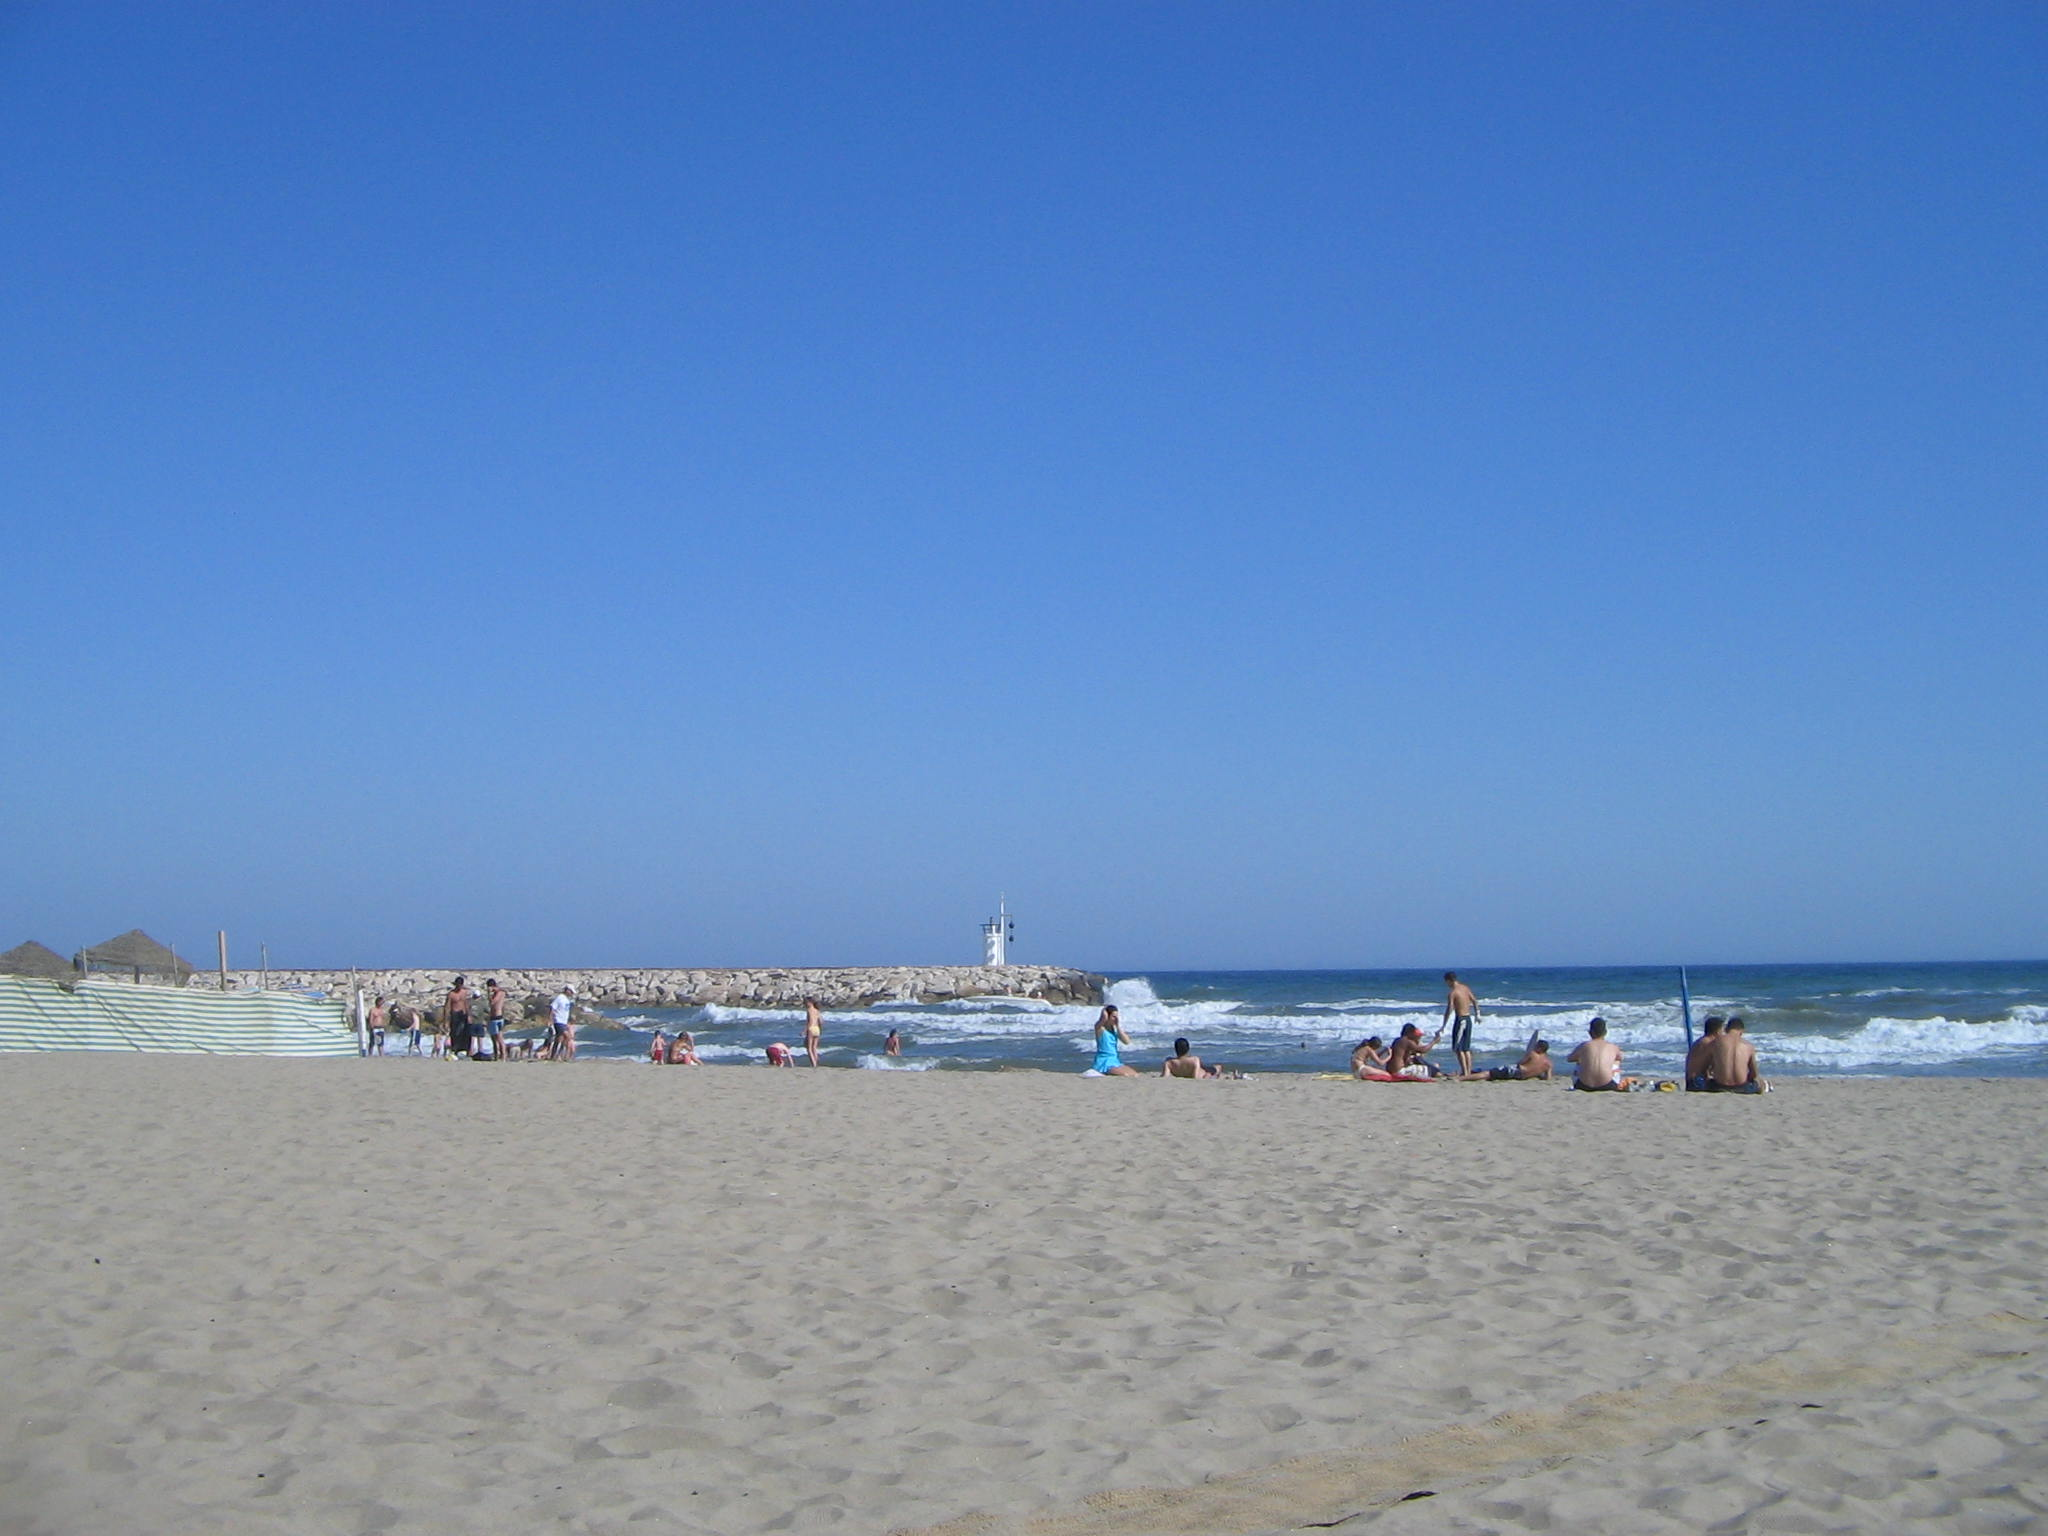 File:Cabopino beach, Costa del Sol, Spain 2005 5.jpg - Wikimedia ...